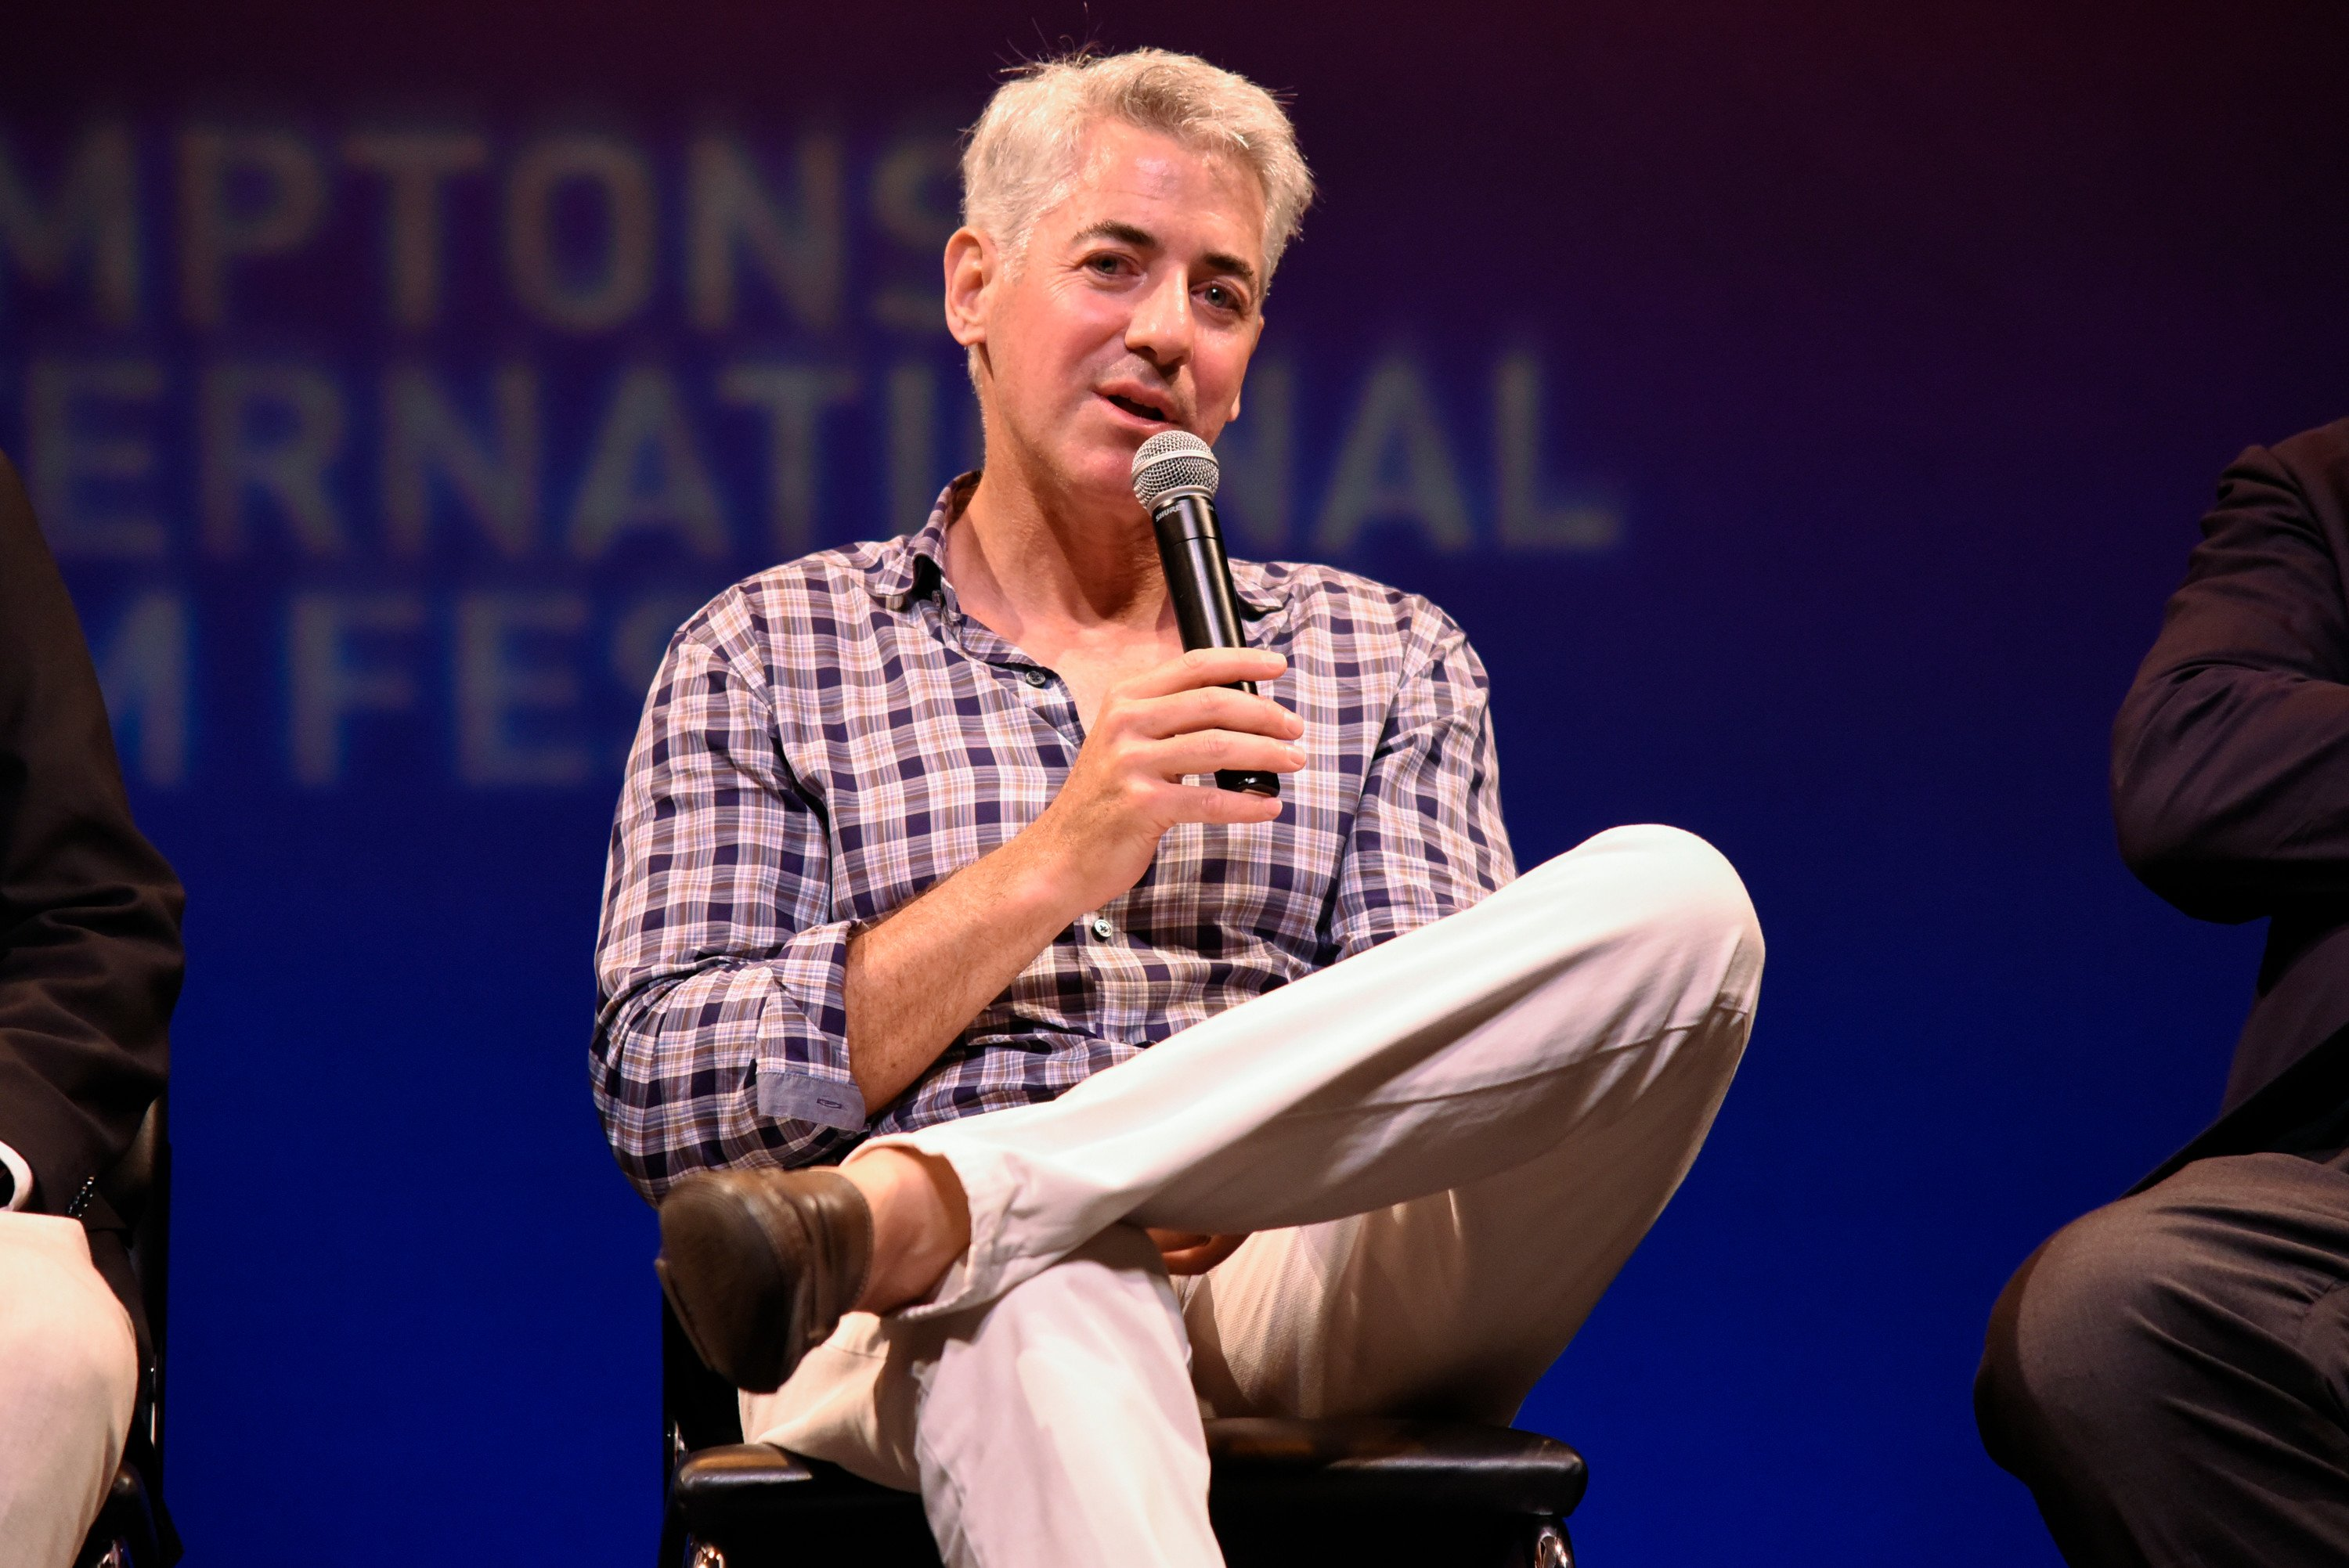 Ackman's Pershing Square fund to slash management fee